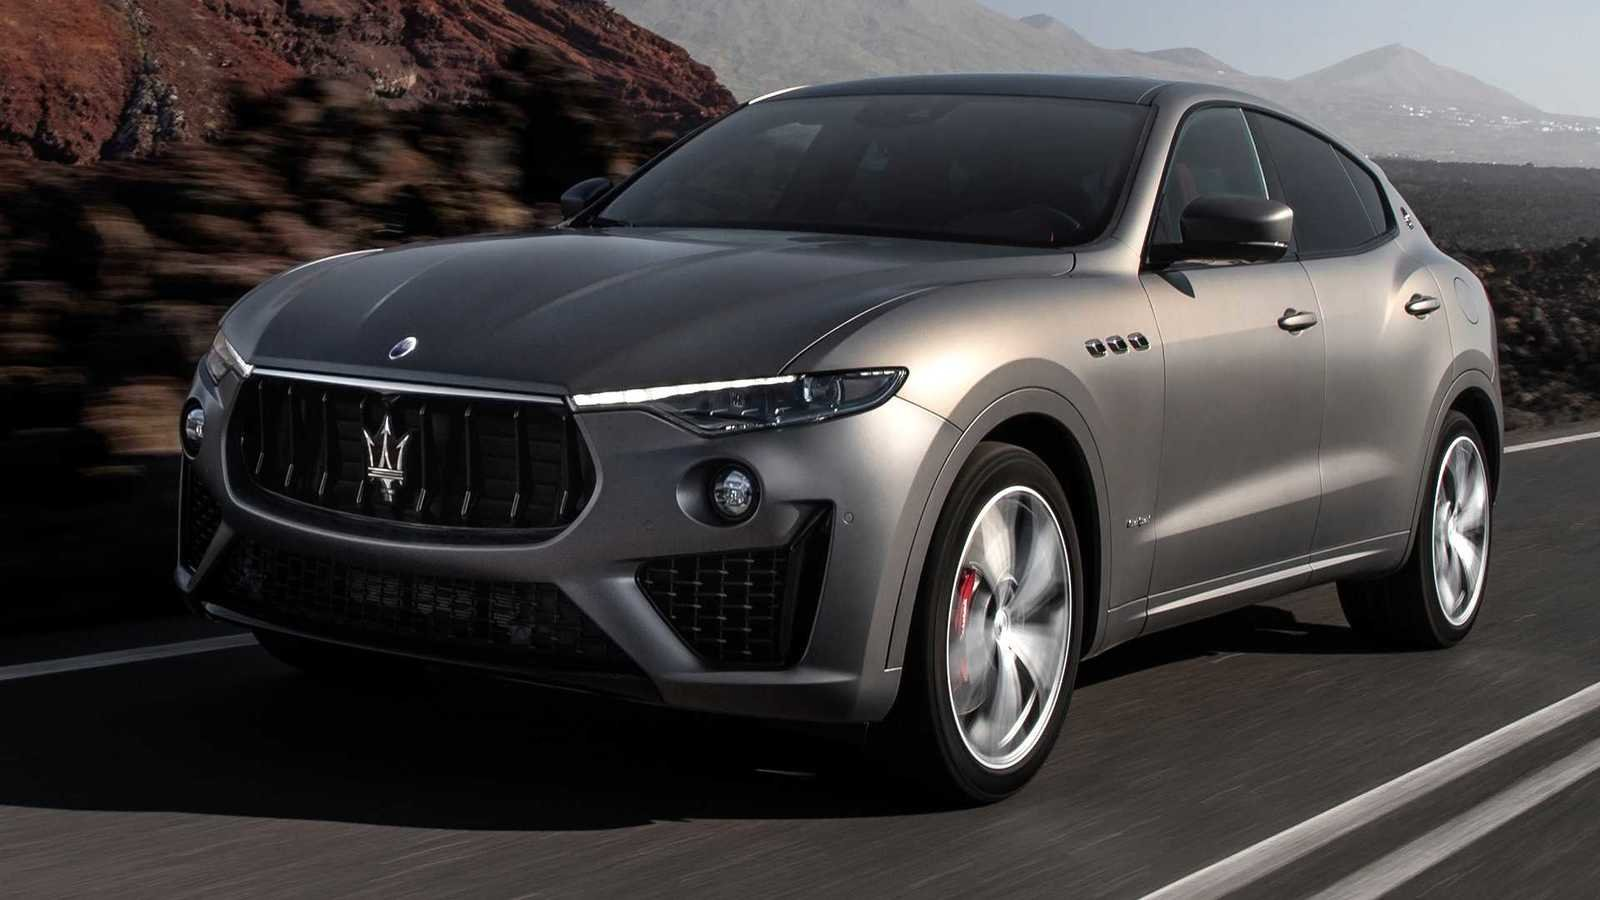 2019 maserati levante vulcano top speed. Black Bedroom Furniture Sets. Home Design Ideas